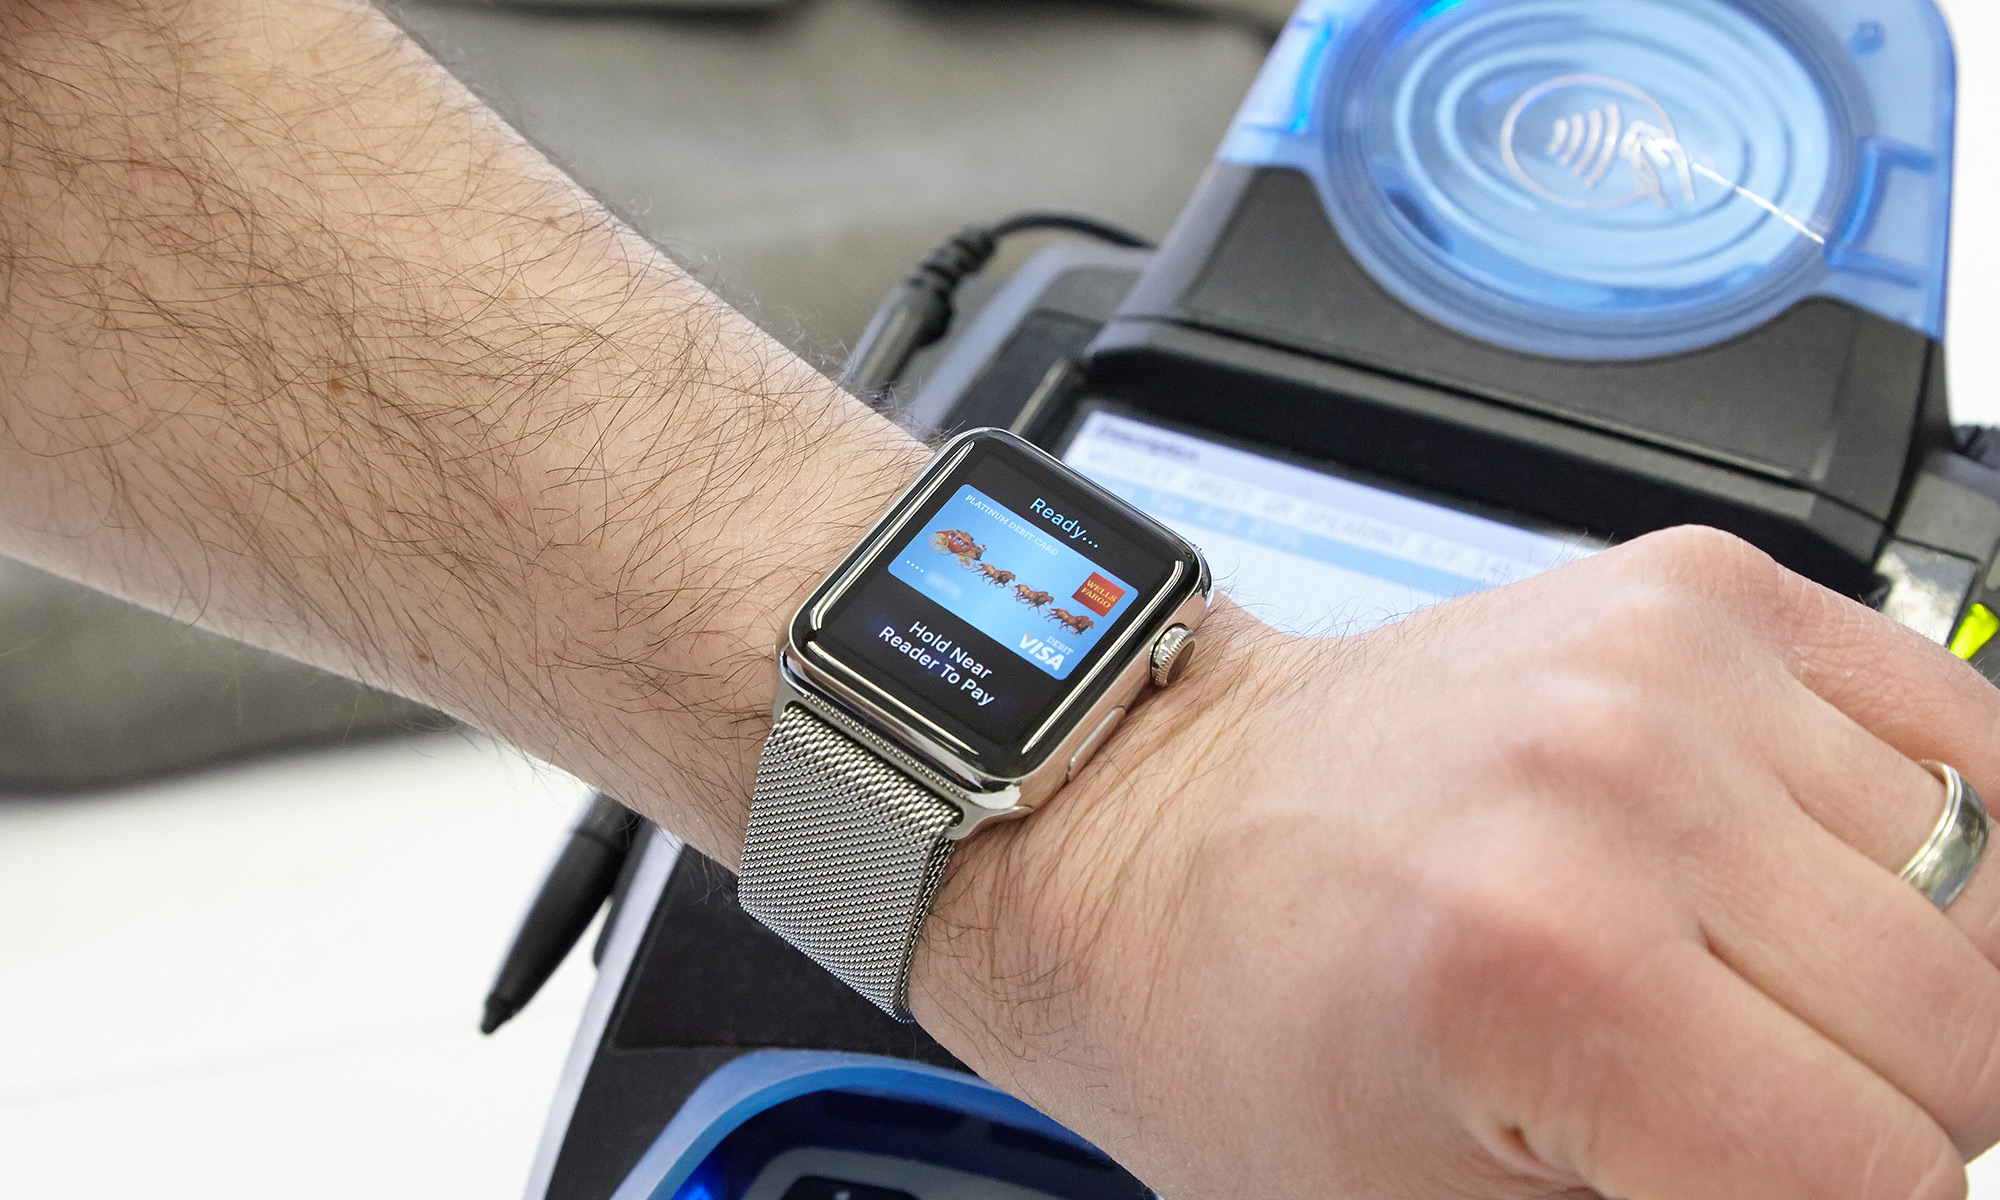 Where Can You Use Apple Pay? - Market Mad House